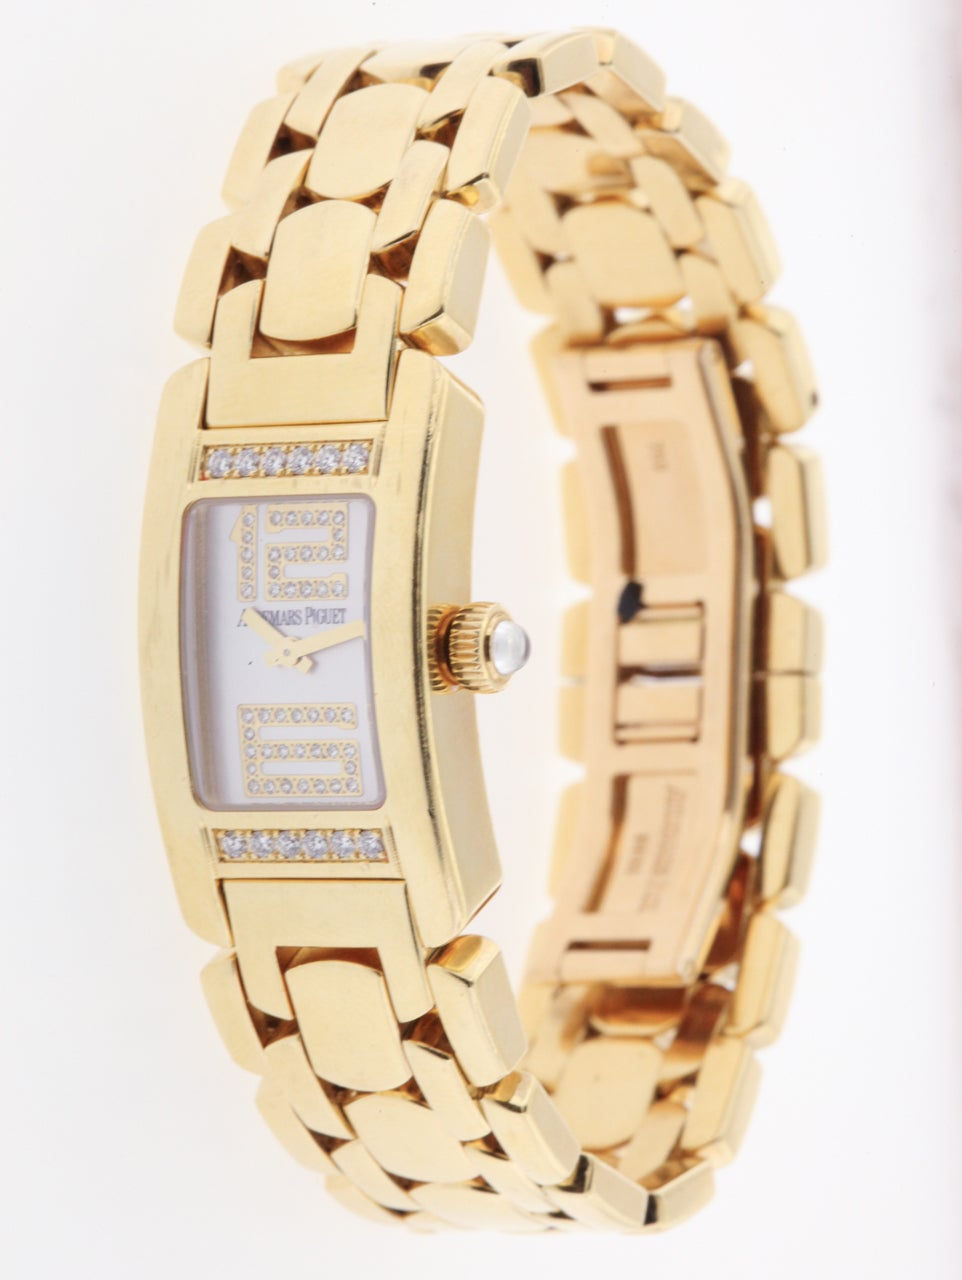 Audemars Piguet Lady's Yellow Gold and Diamond Promesse Bracelet Watch 3